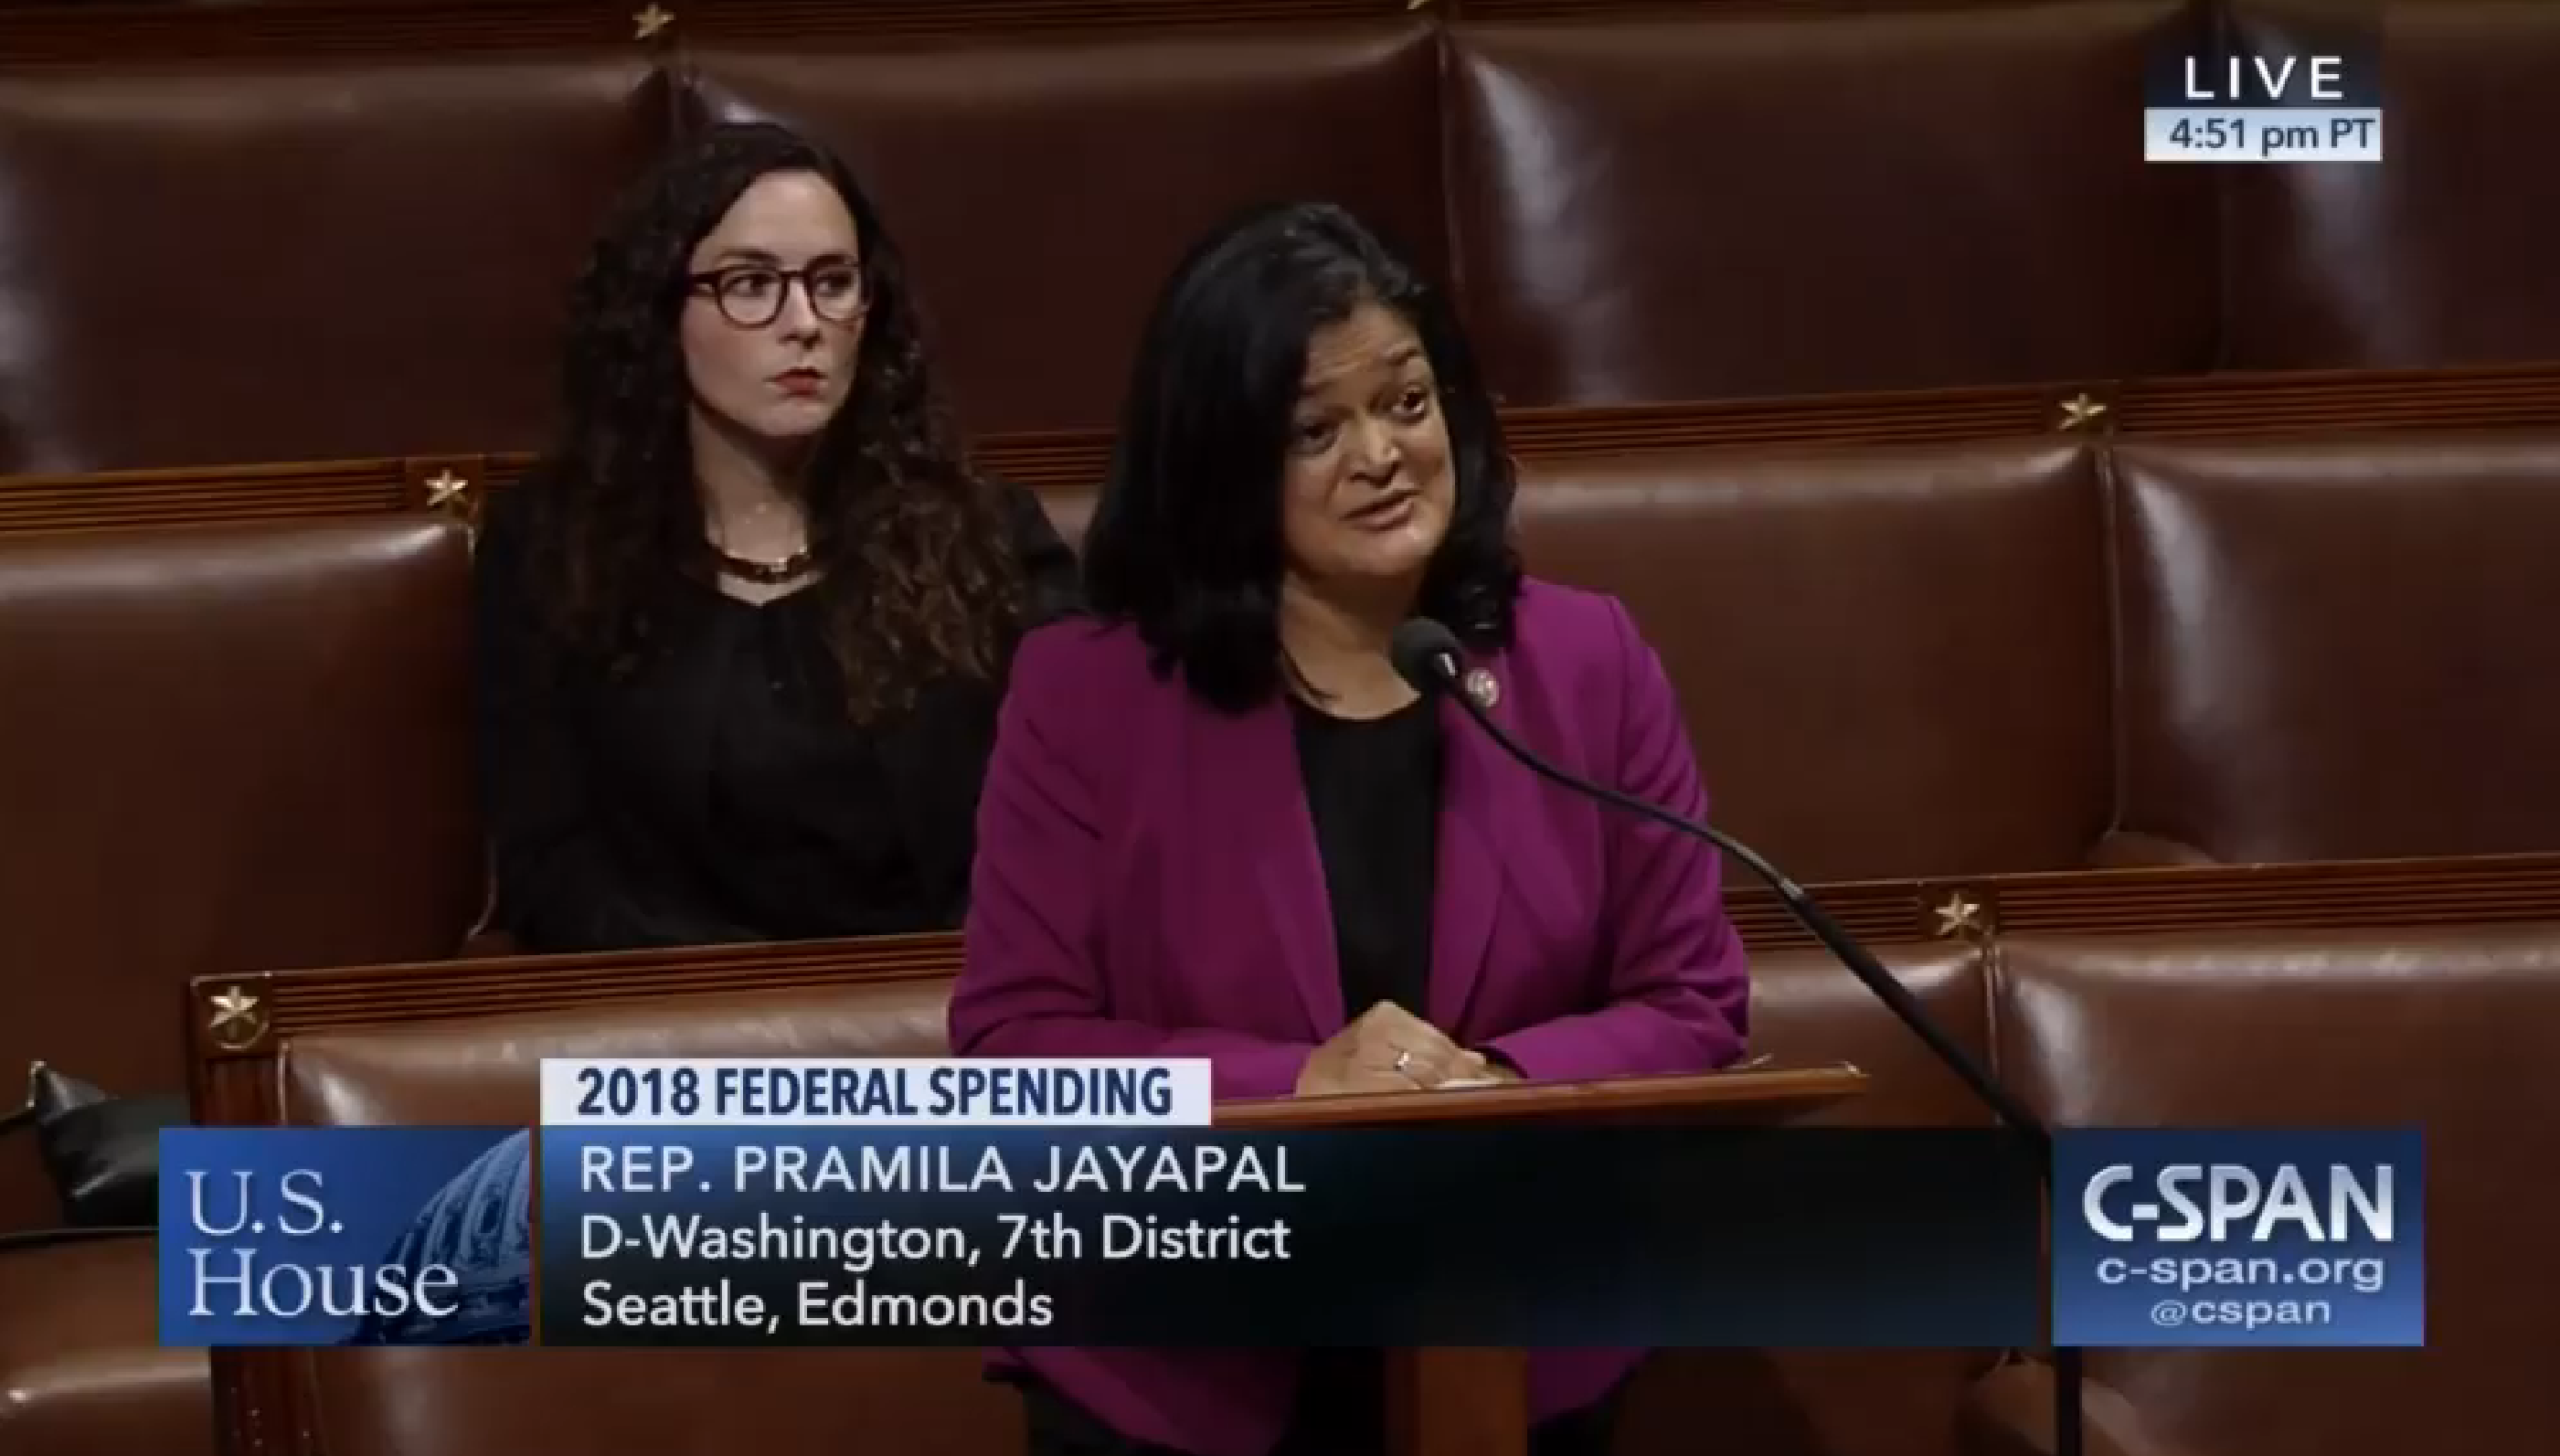 Washington Democratic Senator Pramila Jayapal challenges Alaska Republican Senator Don Young's House Floor comments